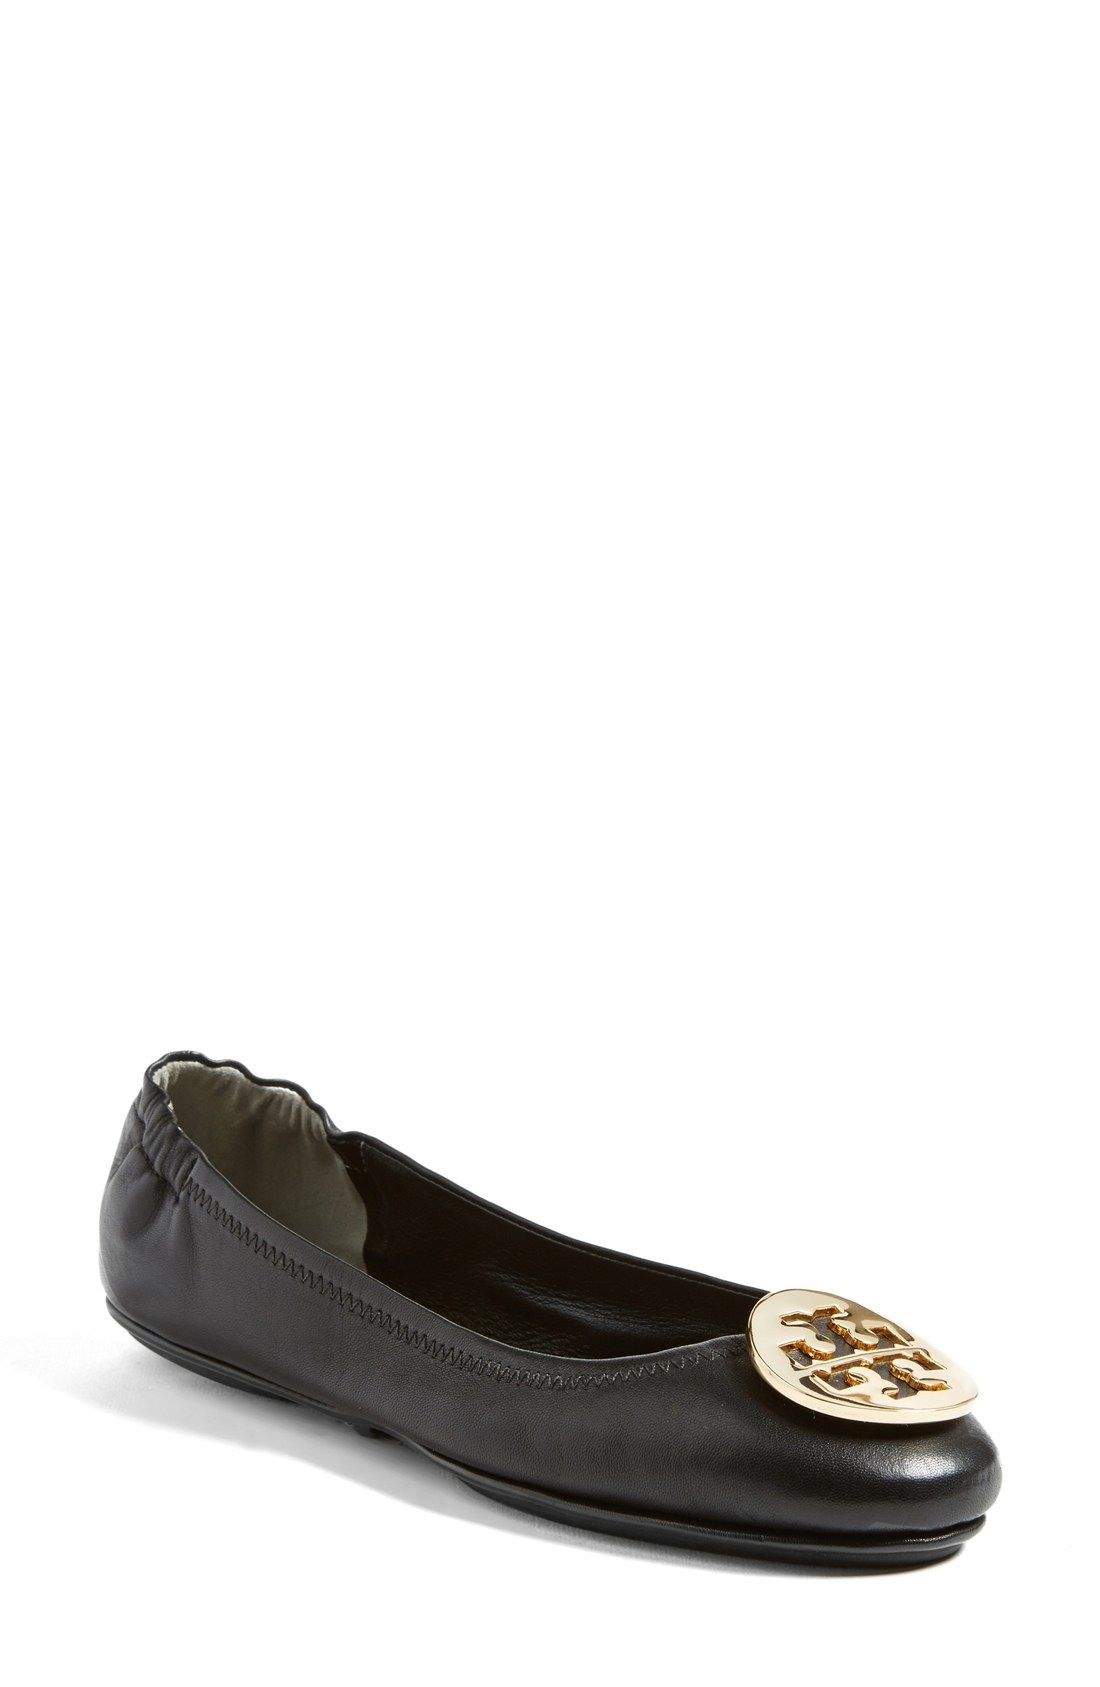 c09dd6e81 Tory Burch  Minnie  Travel Ballet Flat (Women) available at  Nordstrom   Size 7 Black in Gold TB Medallion